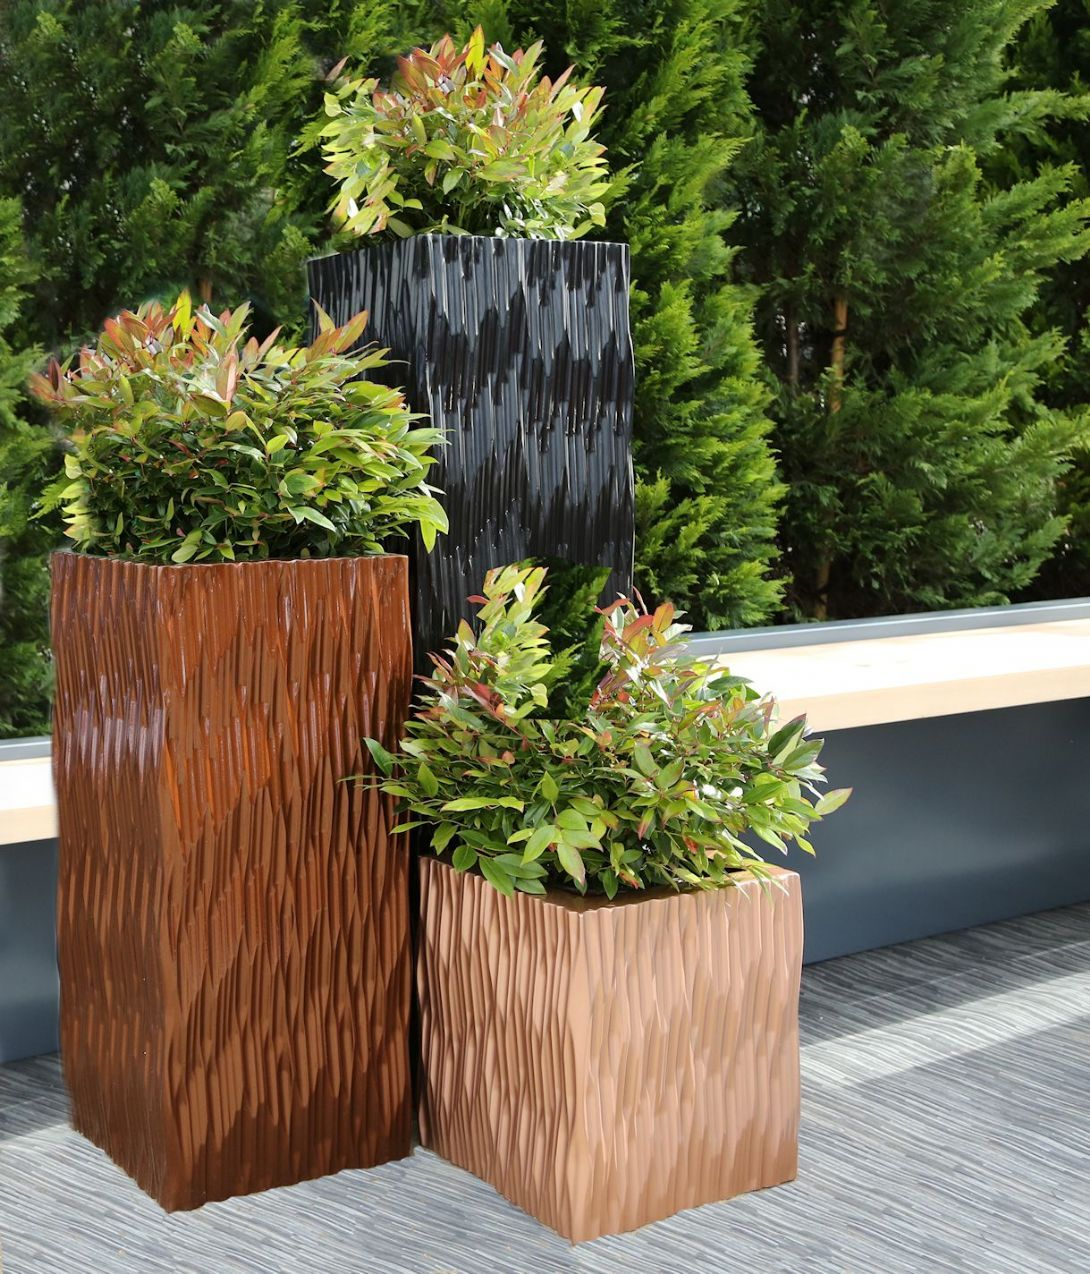 Small Garden Yard With Cute Purple Plants Contemporary: GRp Flexi Tall Square & Trough Planters From Potstore.co